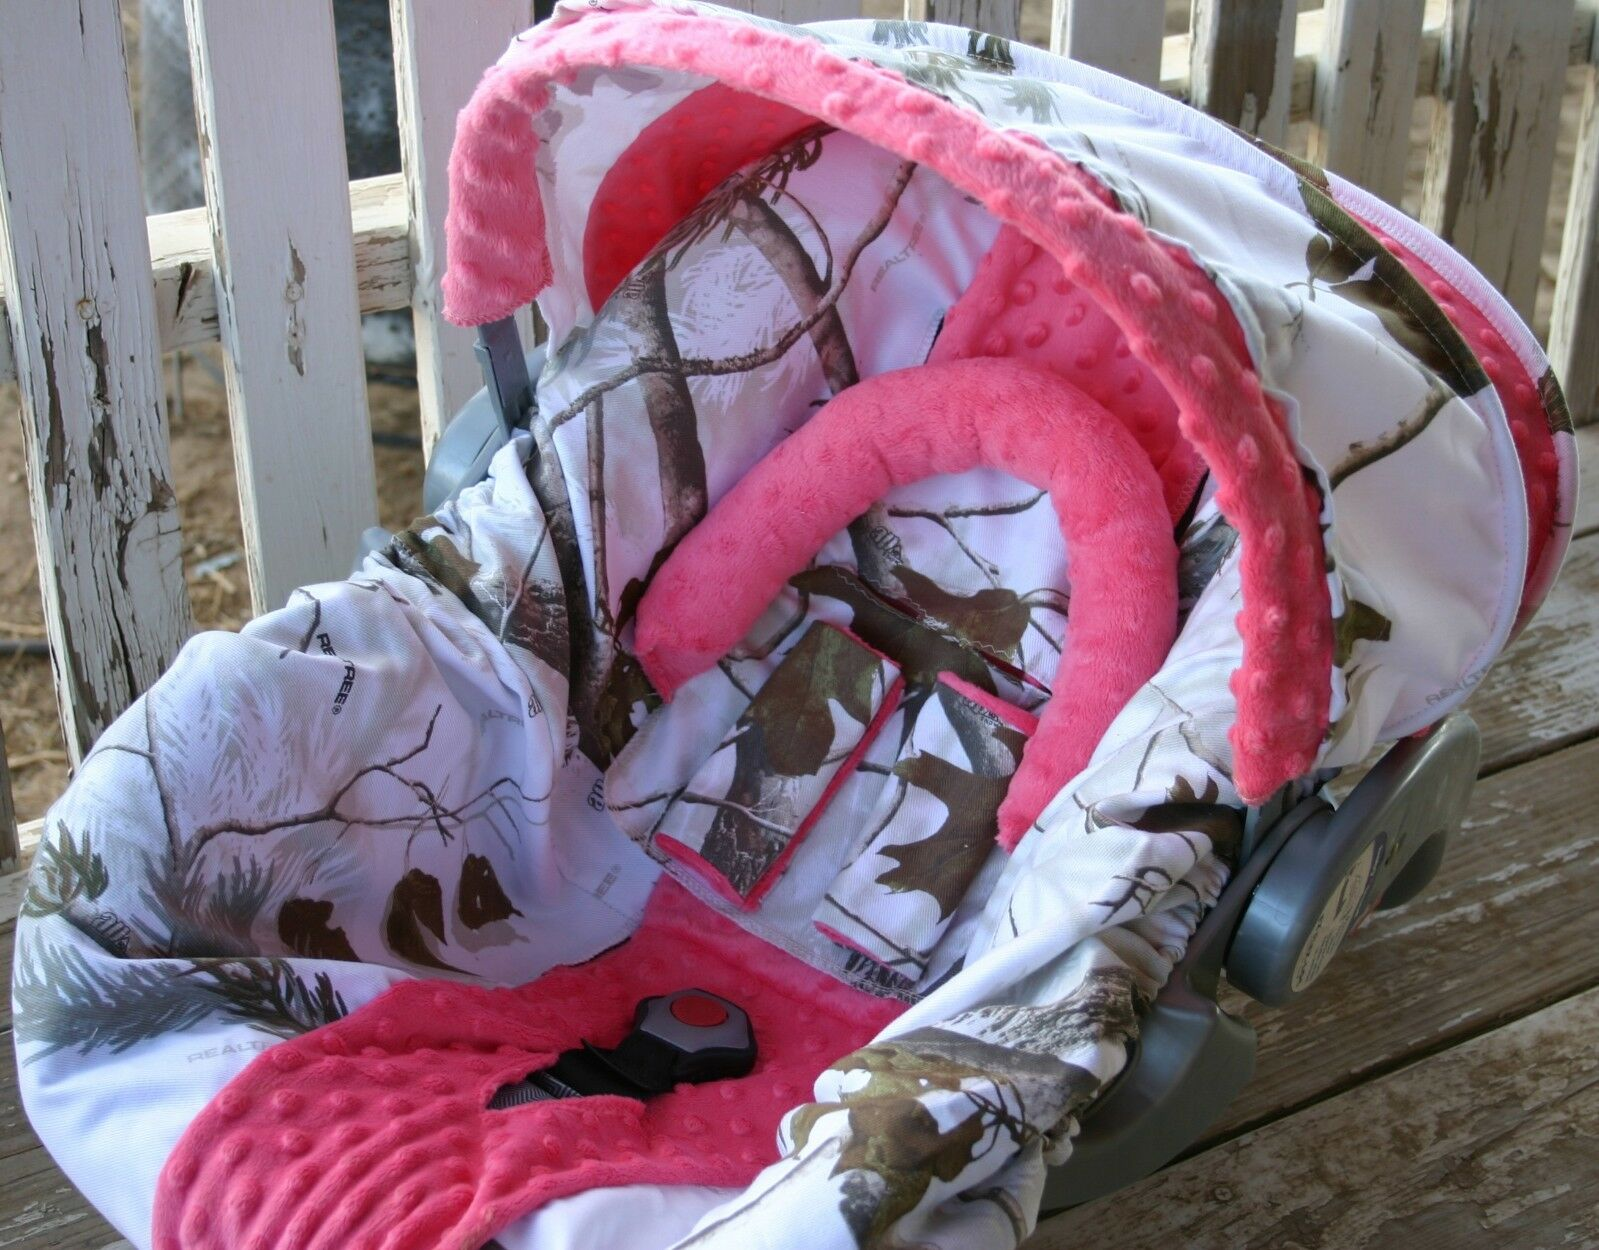 Infant Car Seat Cover And Hood Realtree Snow Camo With Coral Minky 1 Of 3Only Available